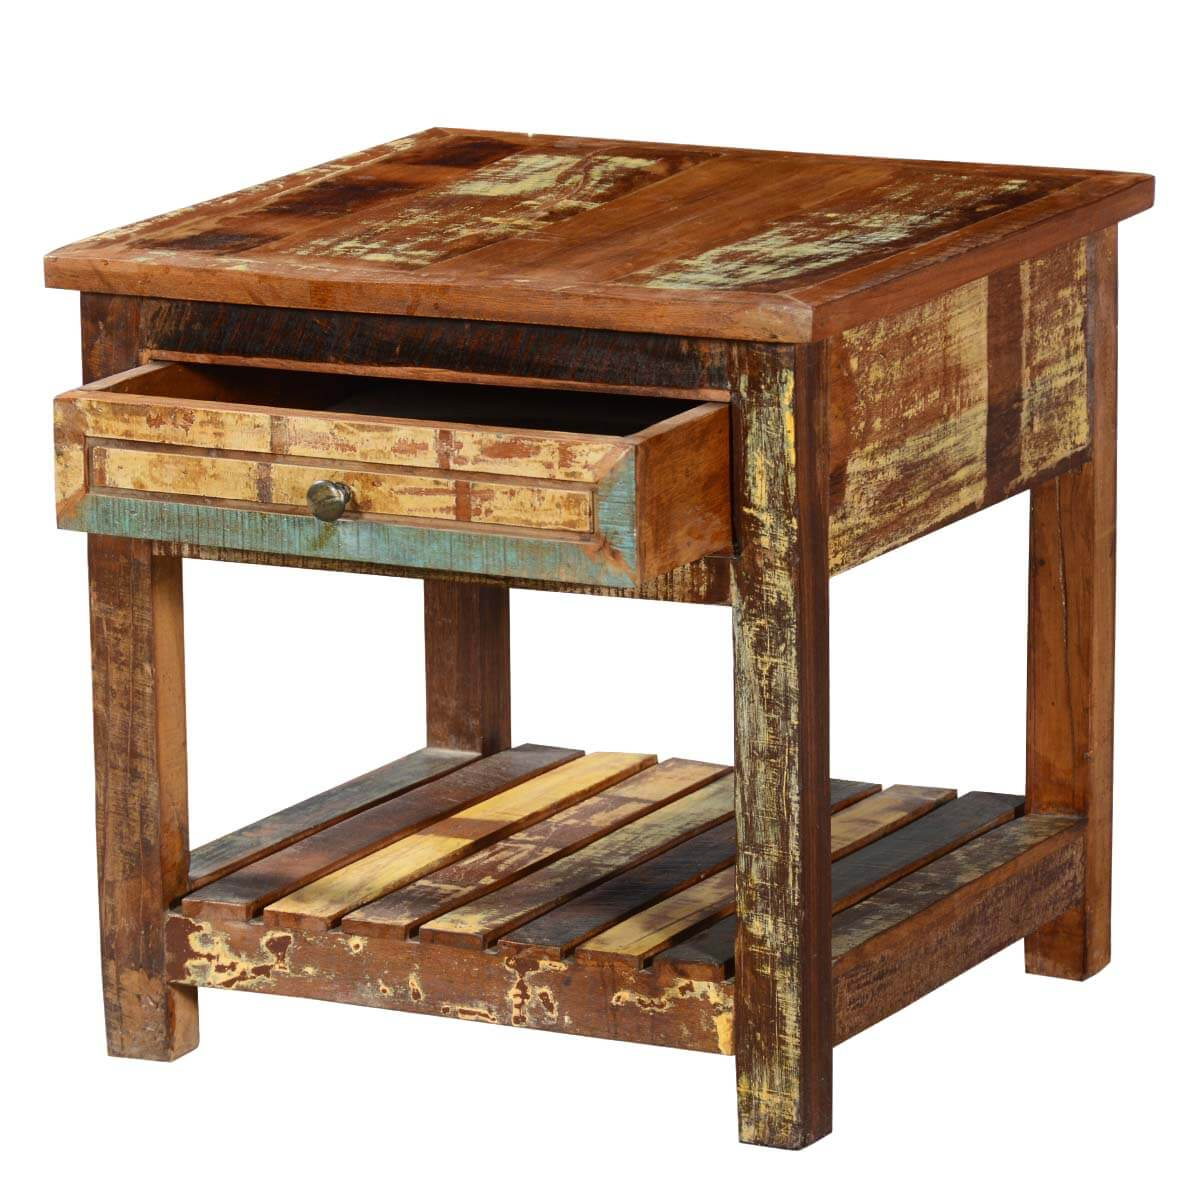 Rustic Reclaimed Wood 2 Tier Bedside Weathered End Table